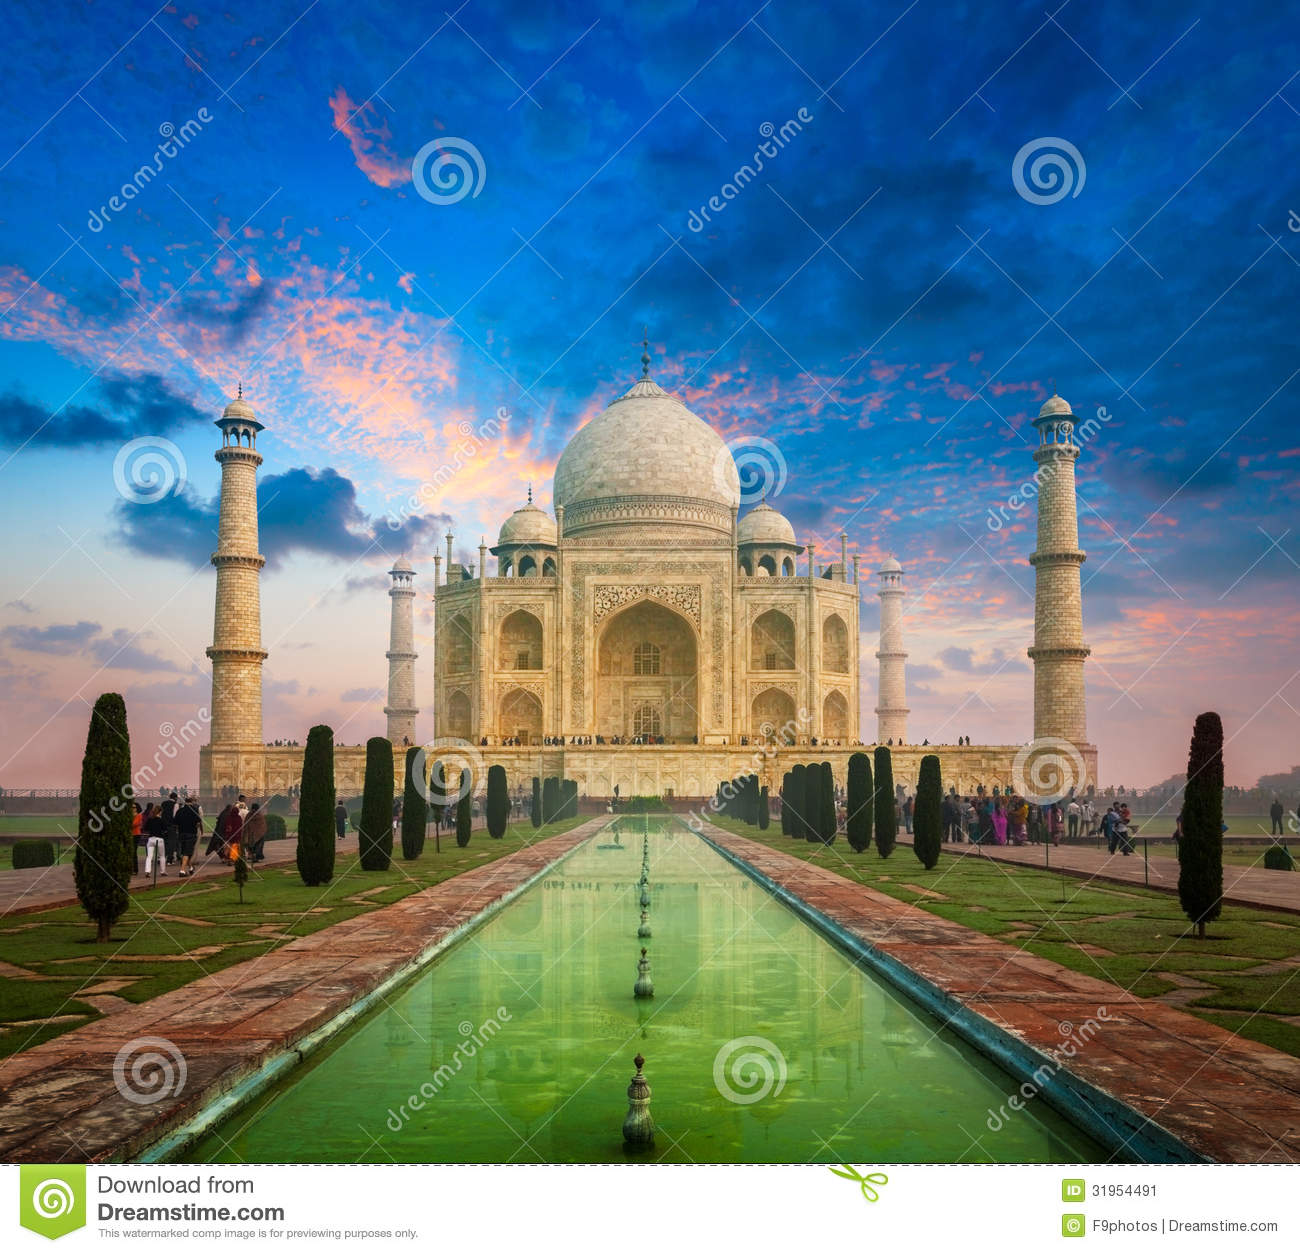 Taj Mahal On Sunrise Sunset, Agra, India Stock Image ...